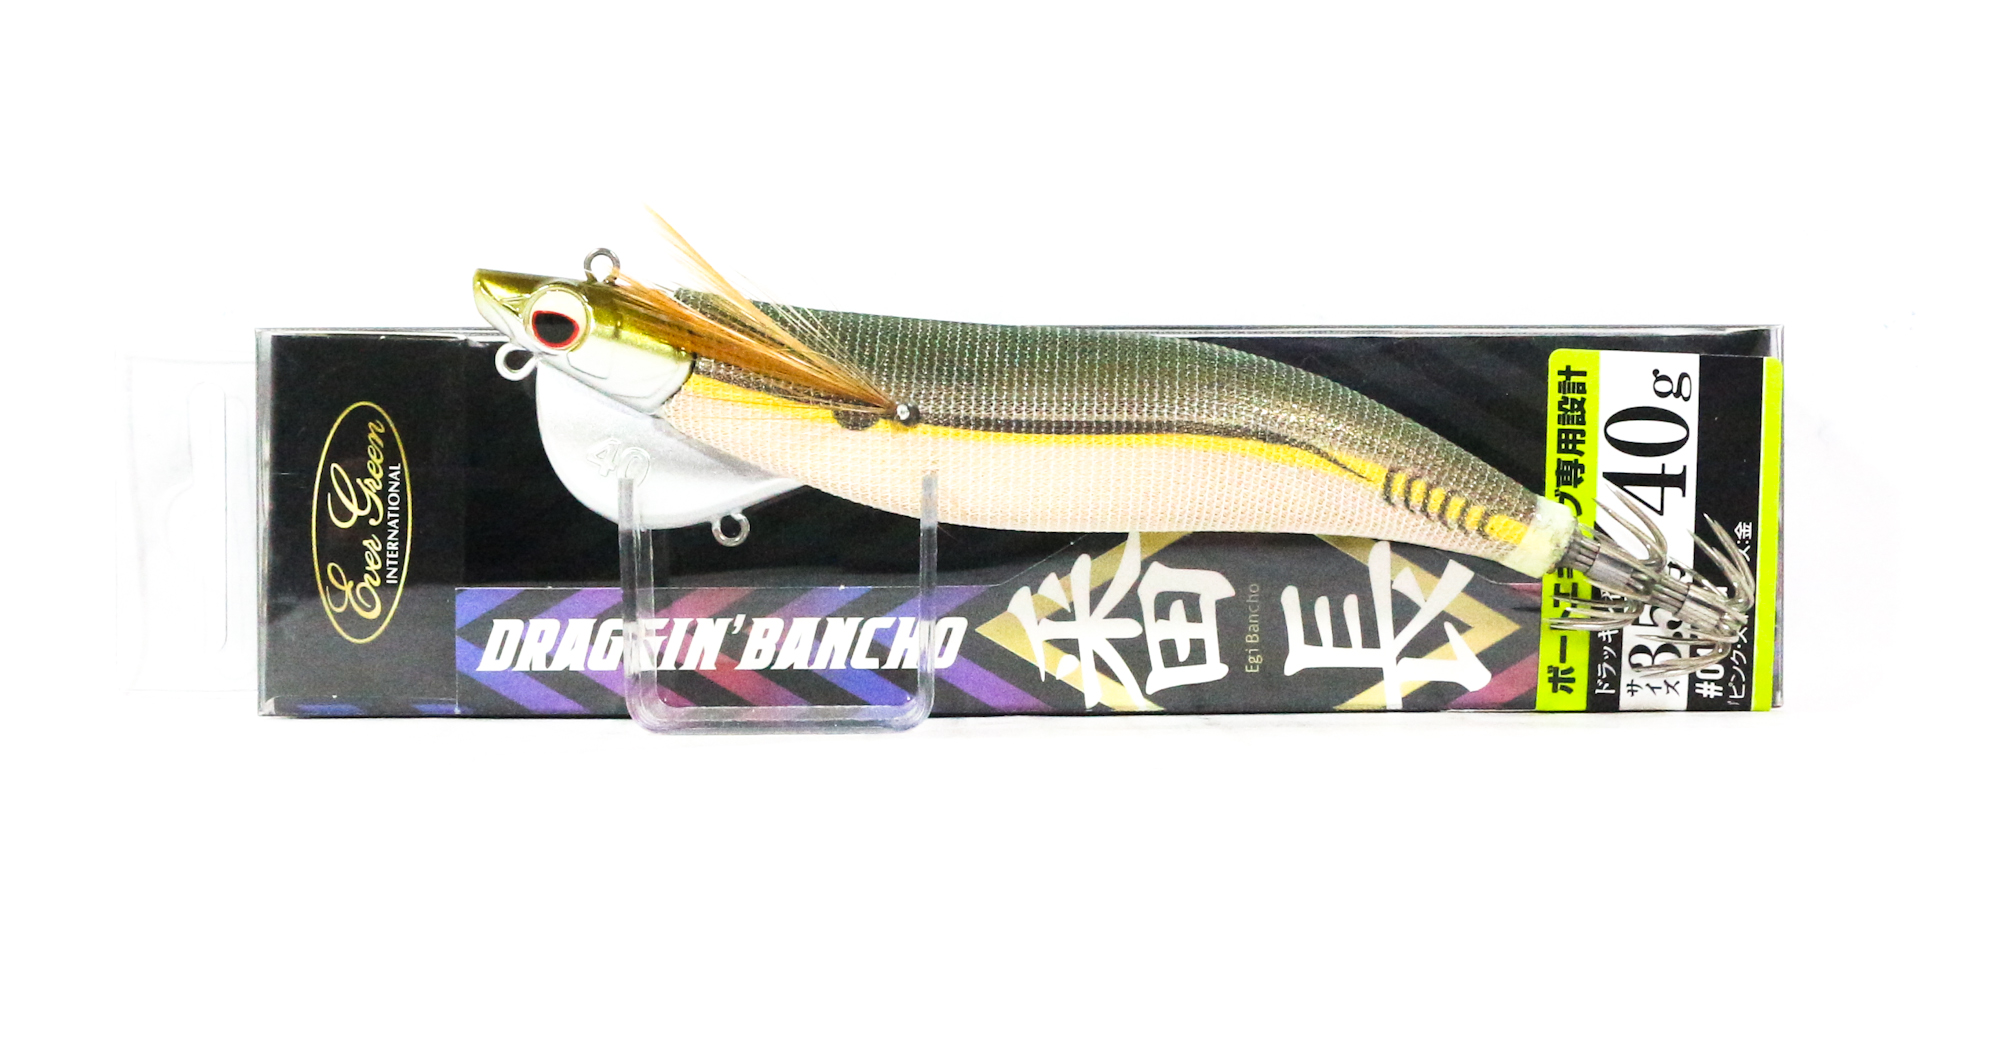 Evergreen Draggin Bancho Squid Jig Lure 3.5 40 grams 0401G (0589)